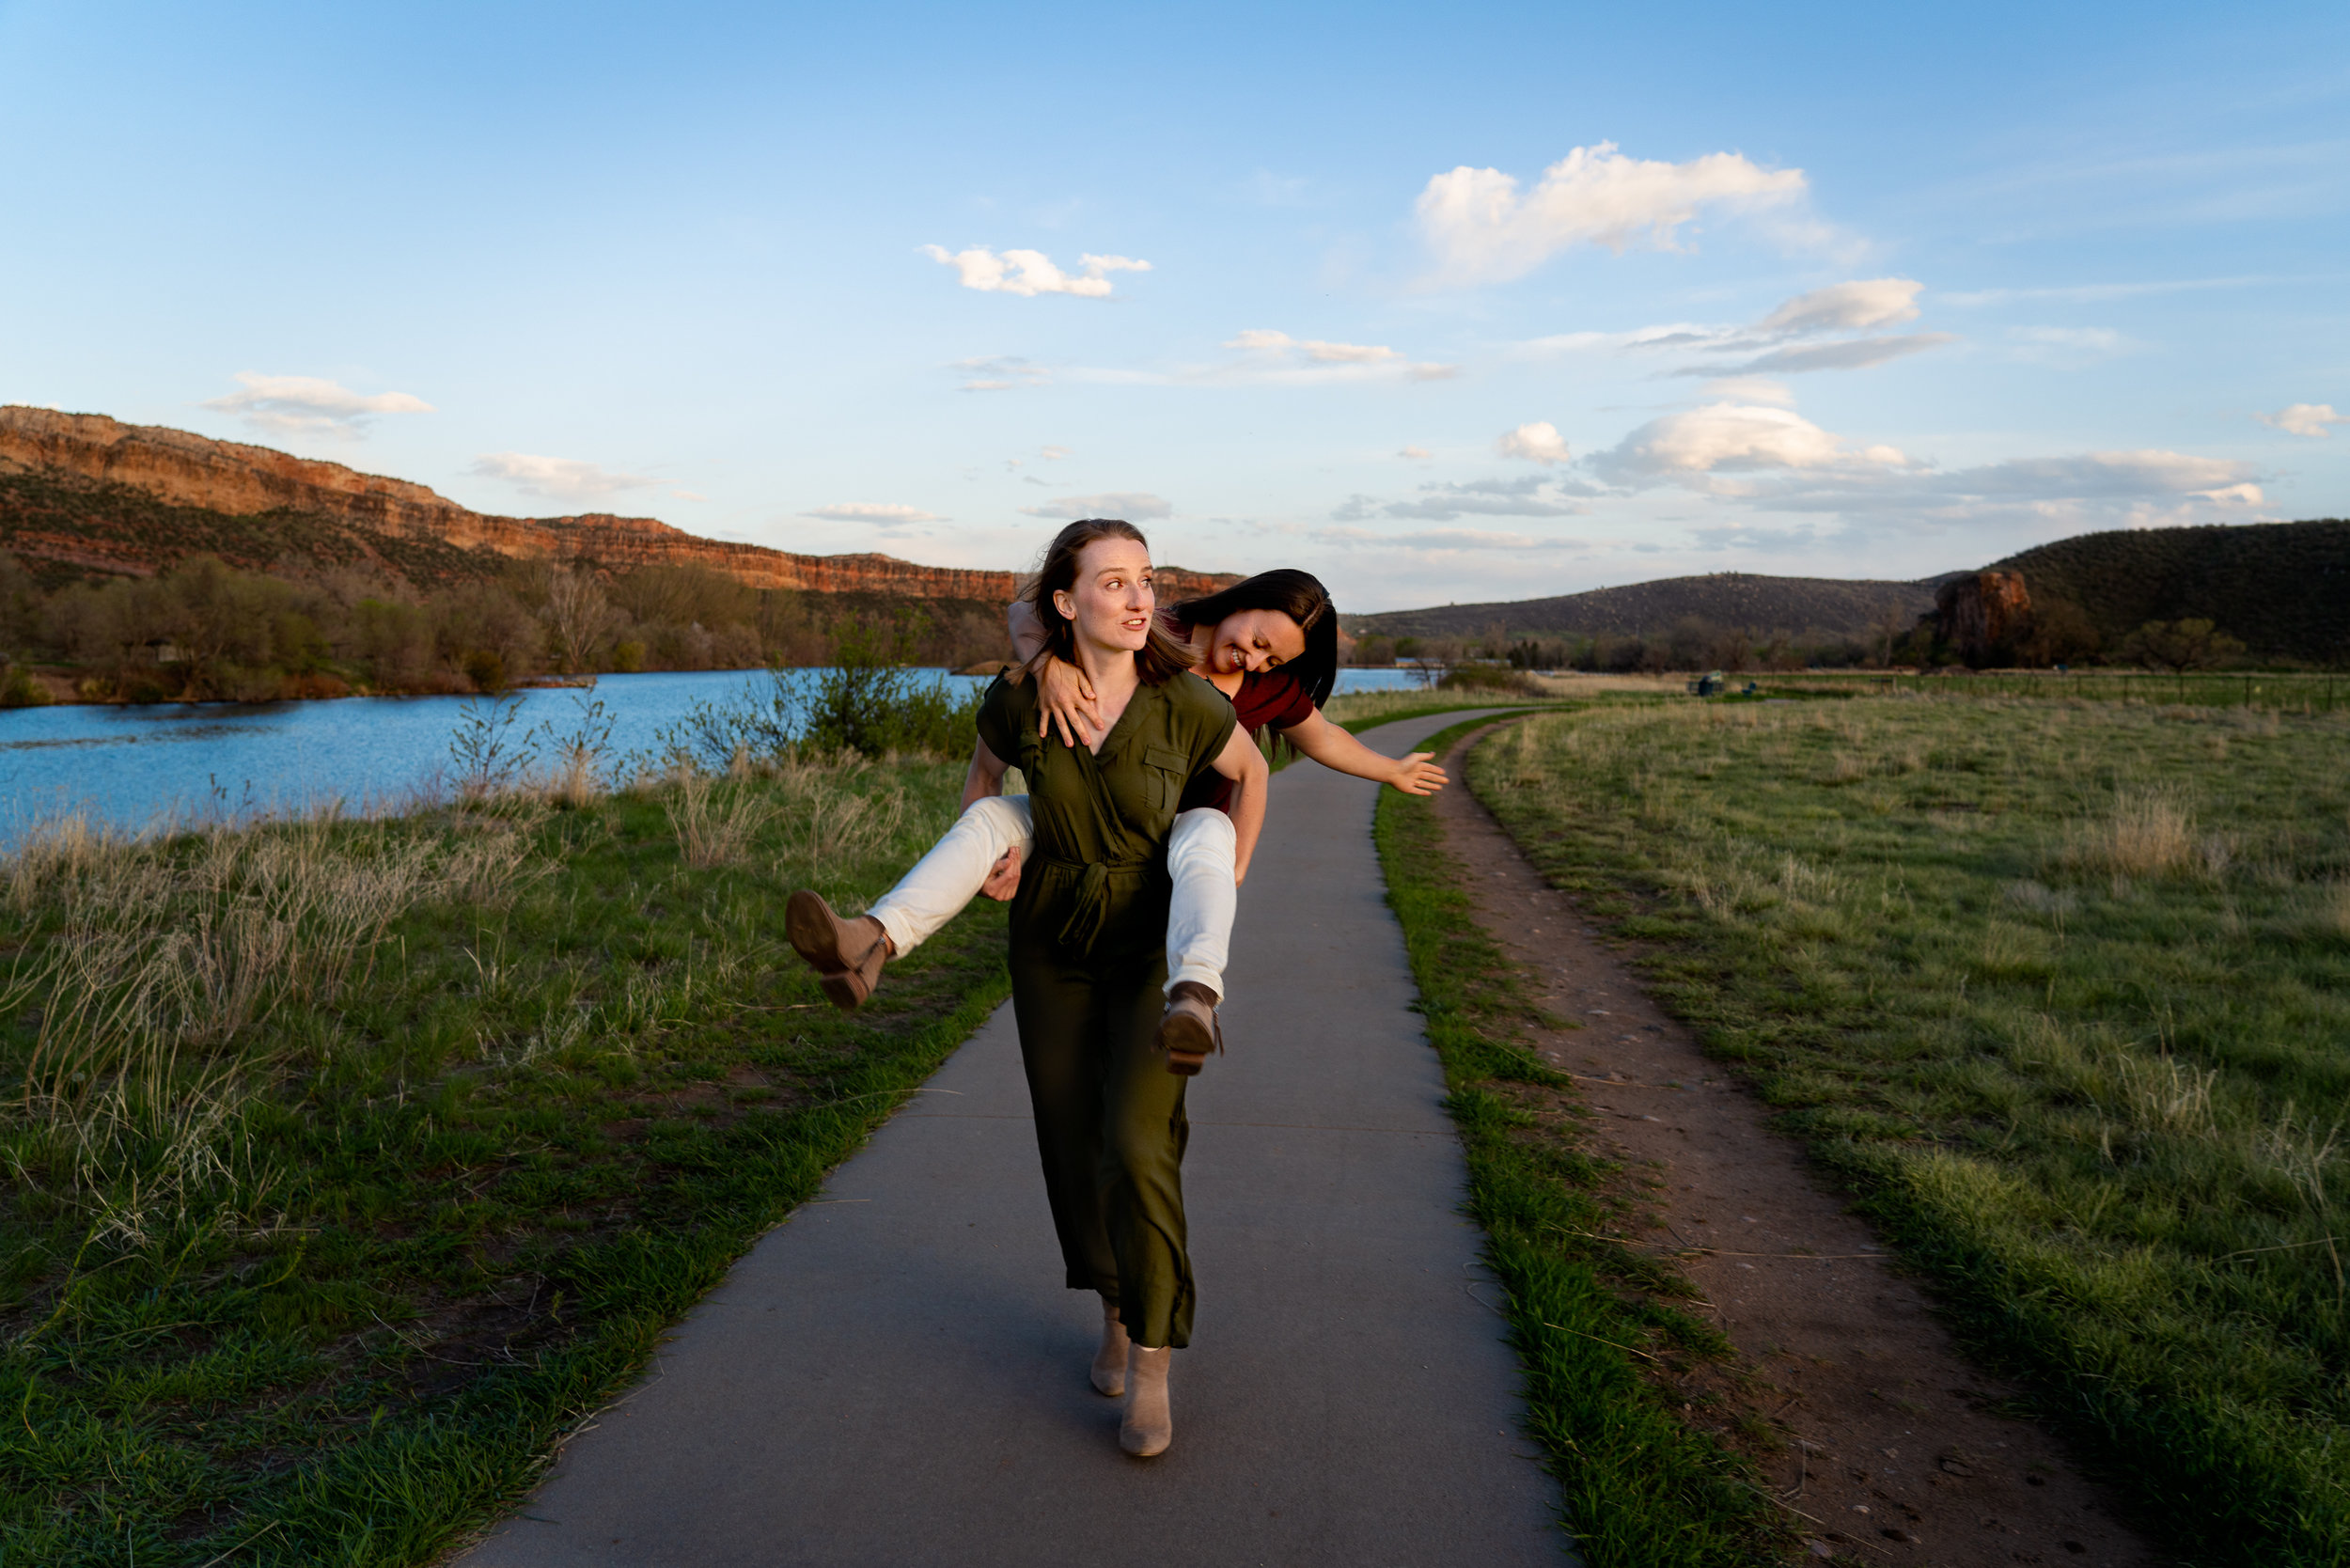 Poudre_Canyon_Engagement_Session-53.jpg